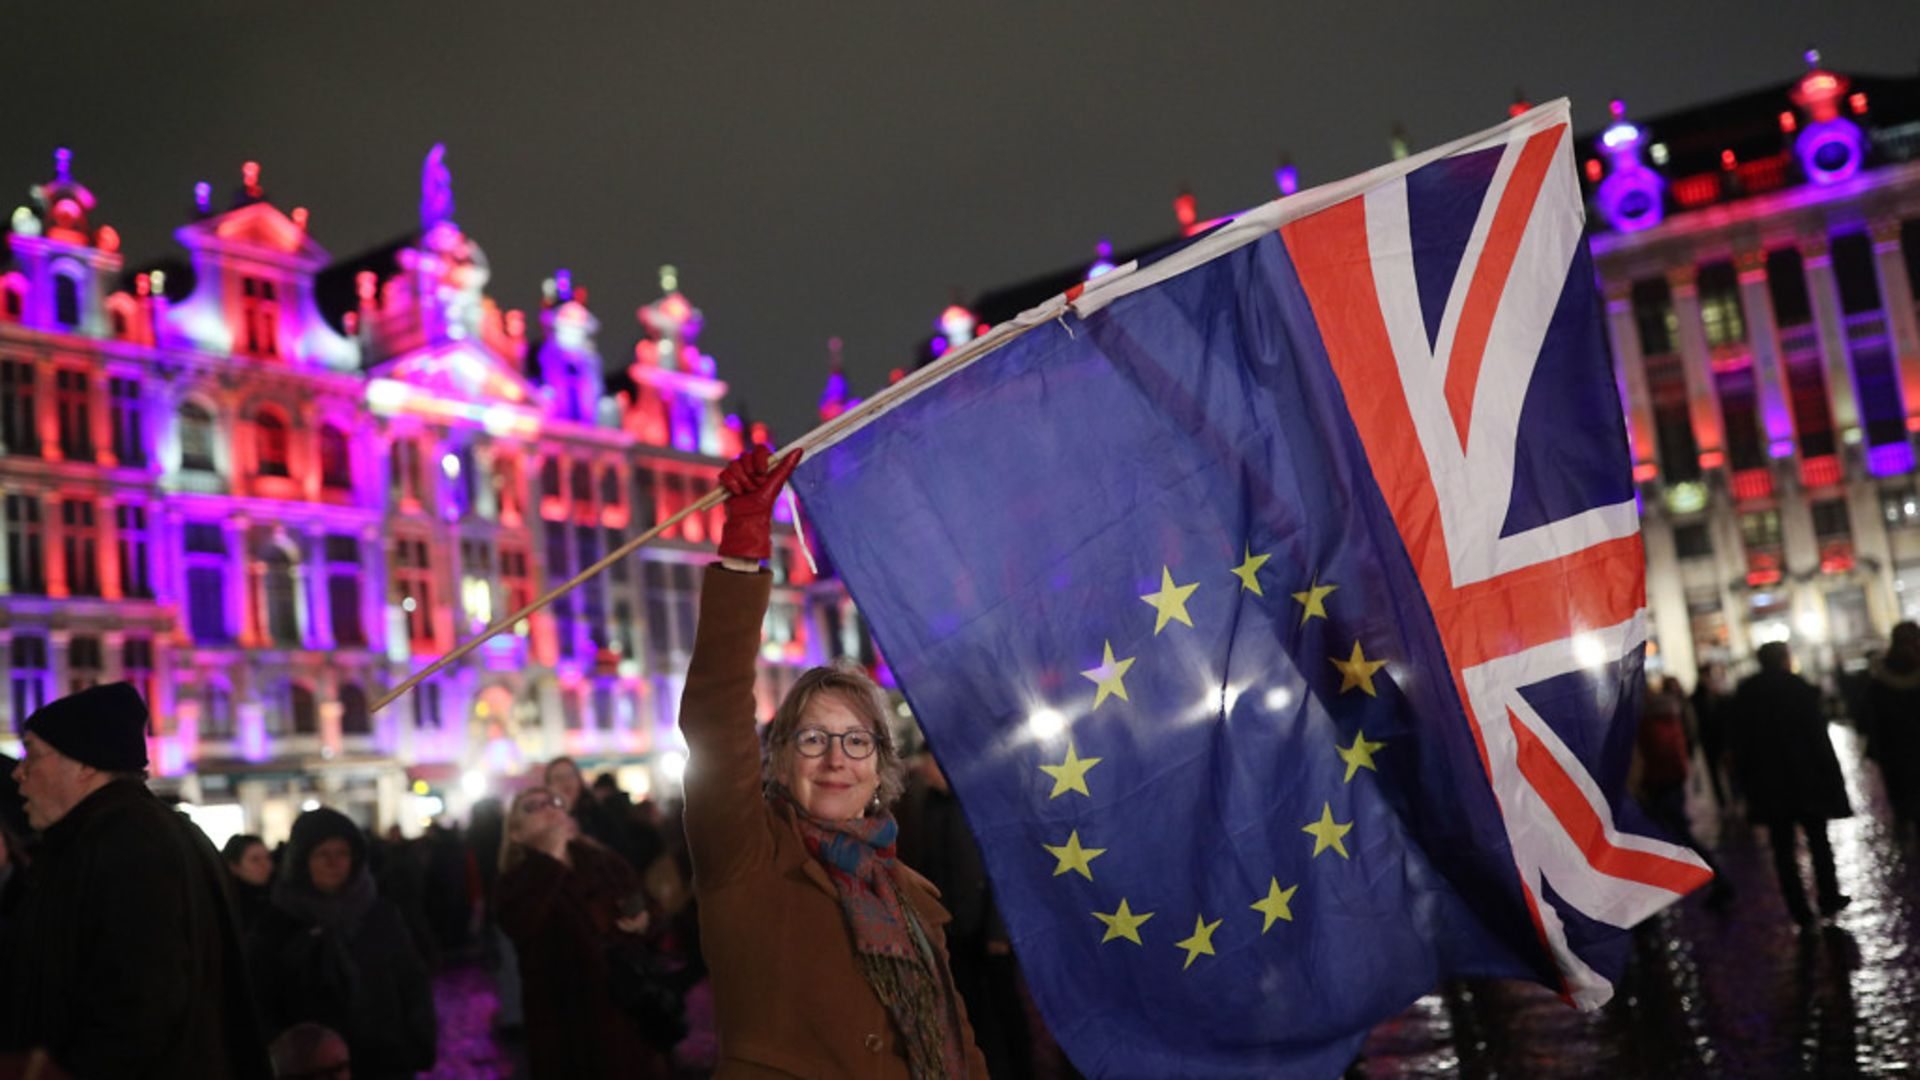 Deirdre Thomas, a resident of Belguim, waving an EU flag and a Union jack in Grand Place in Brussels, Belgium. - Credit: PA